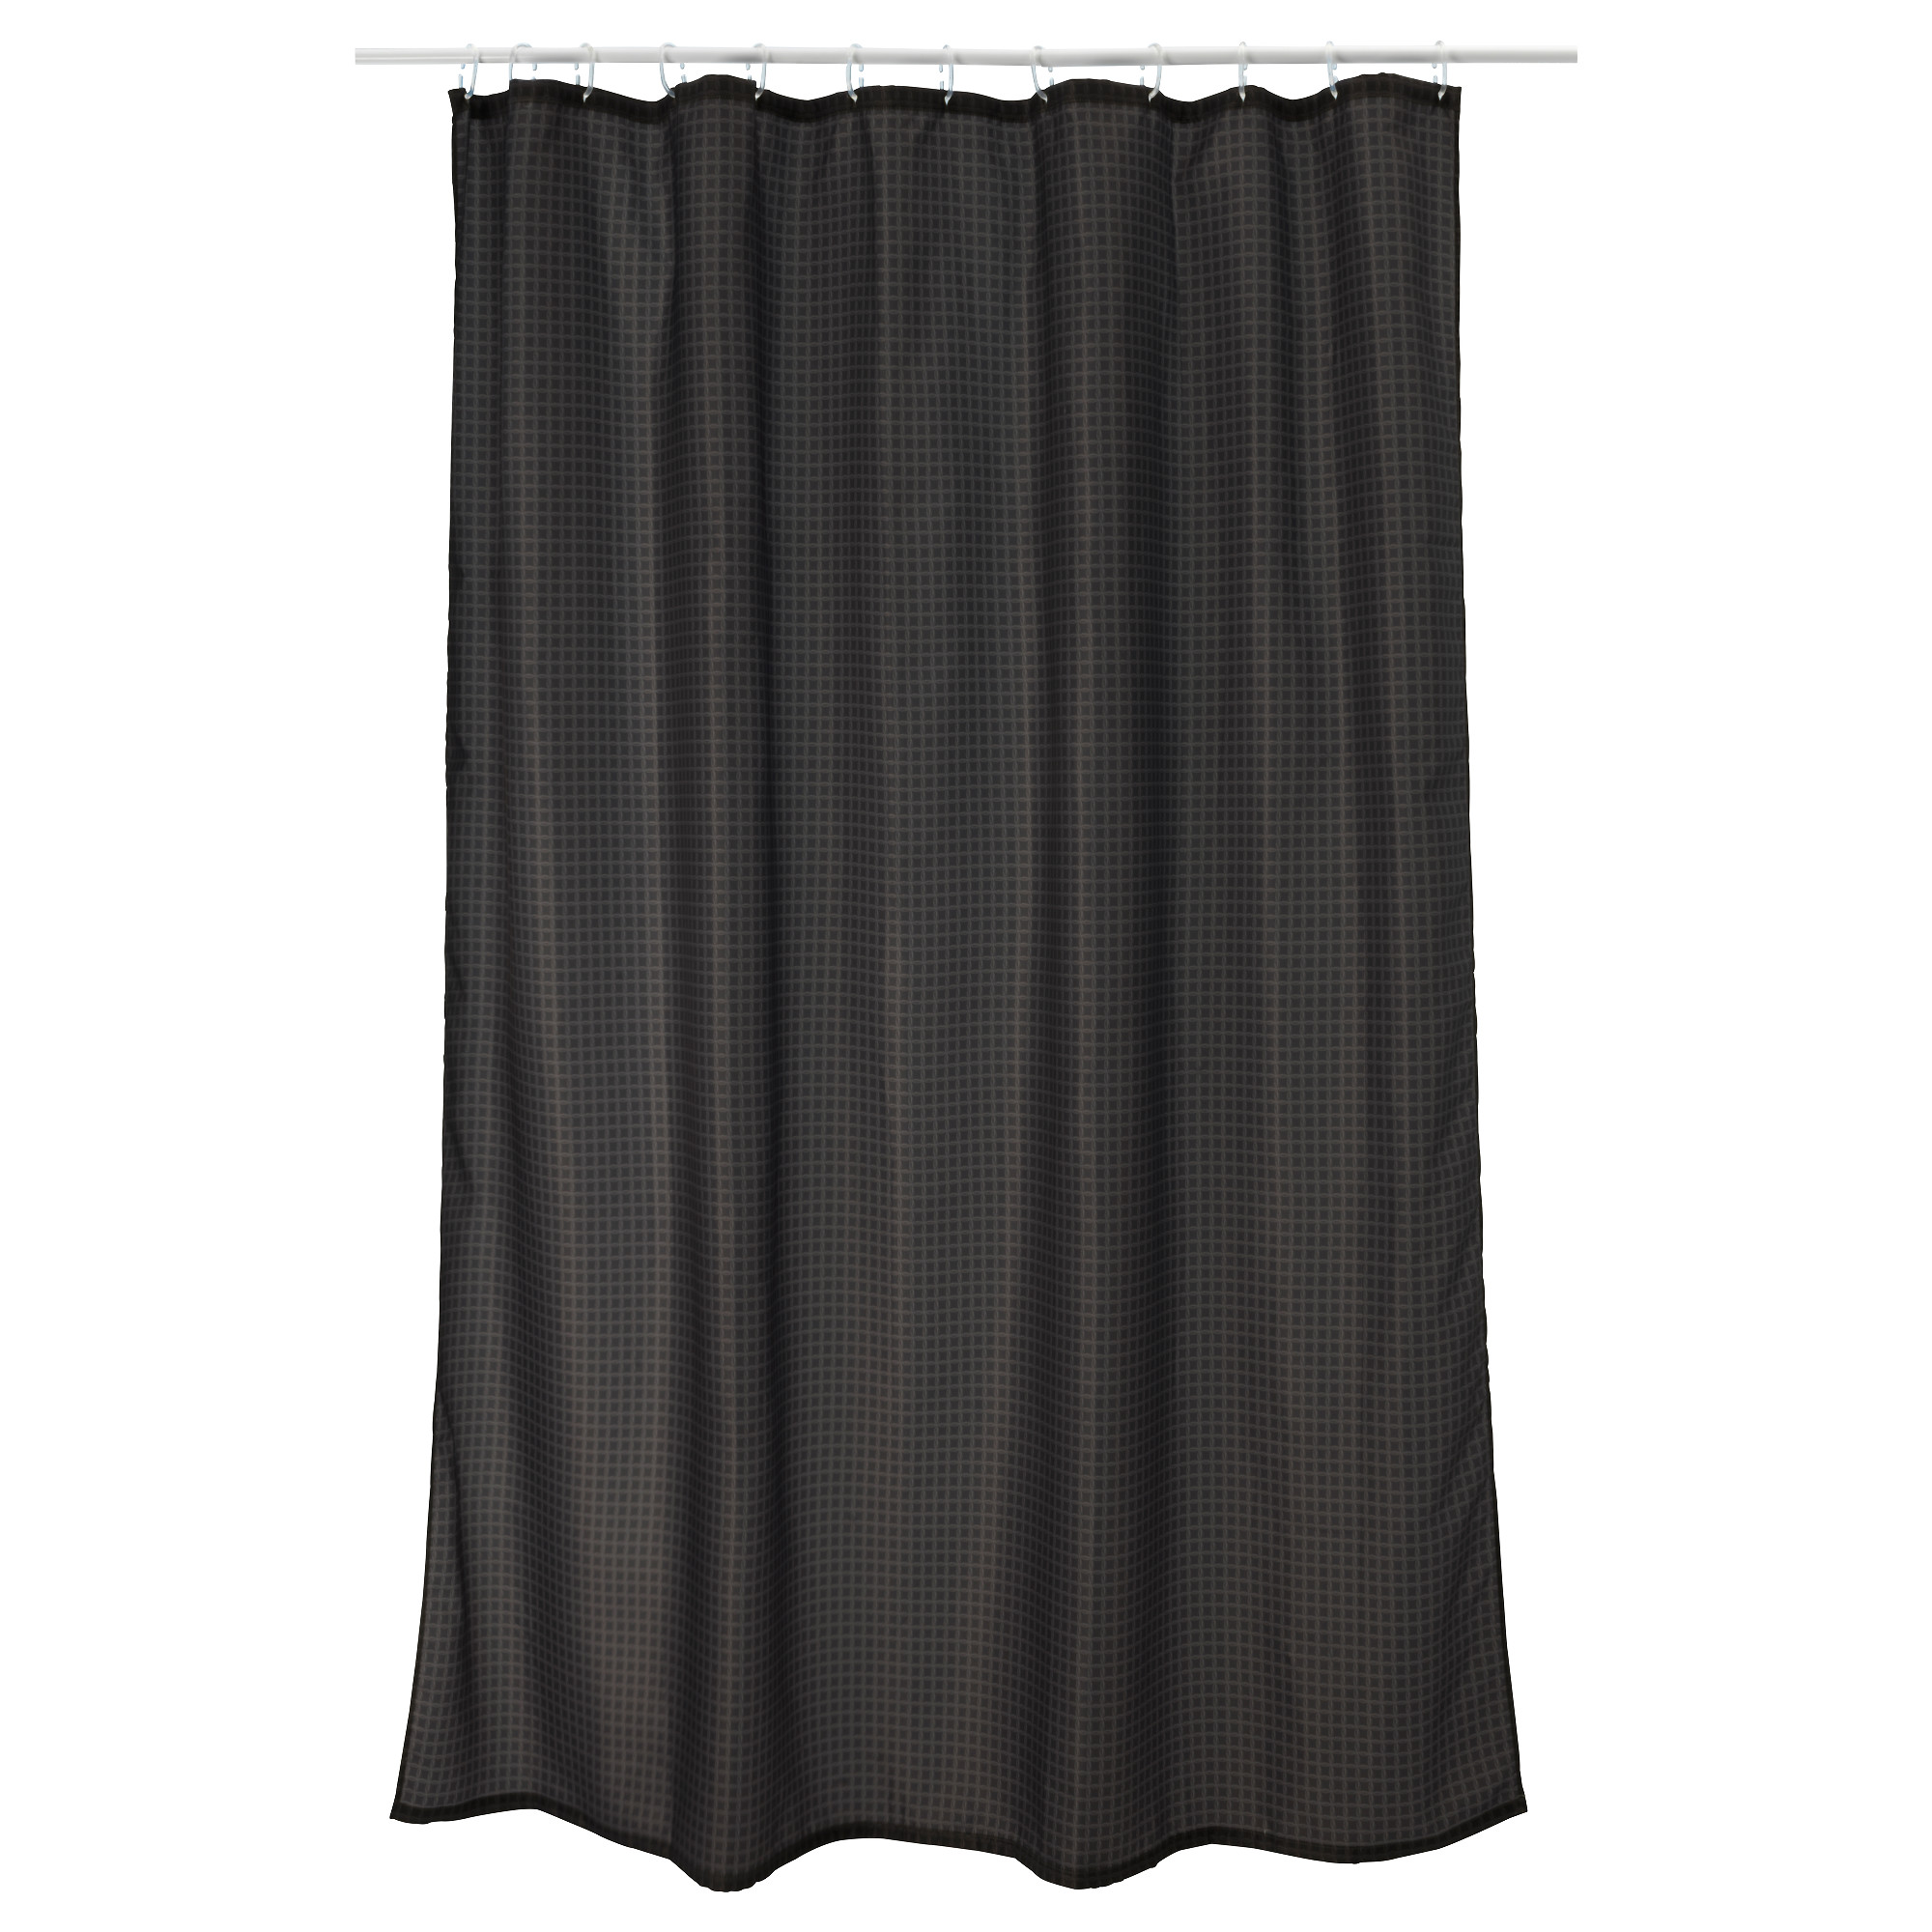 Tvingen Shower Curtain | Ikea Shower Curtain | Bathroom Curtain Rods